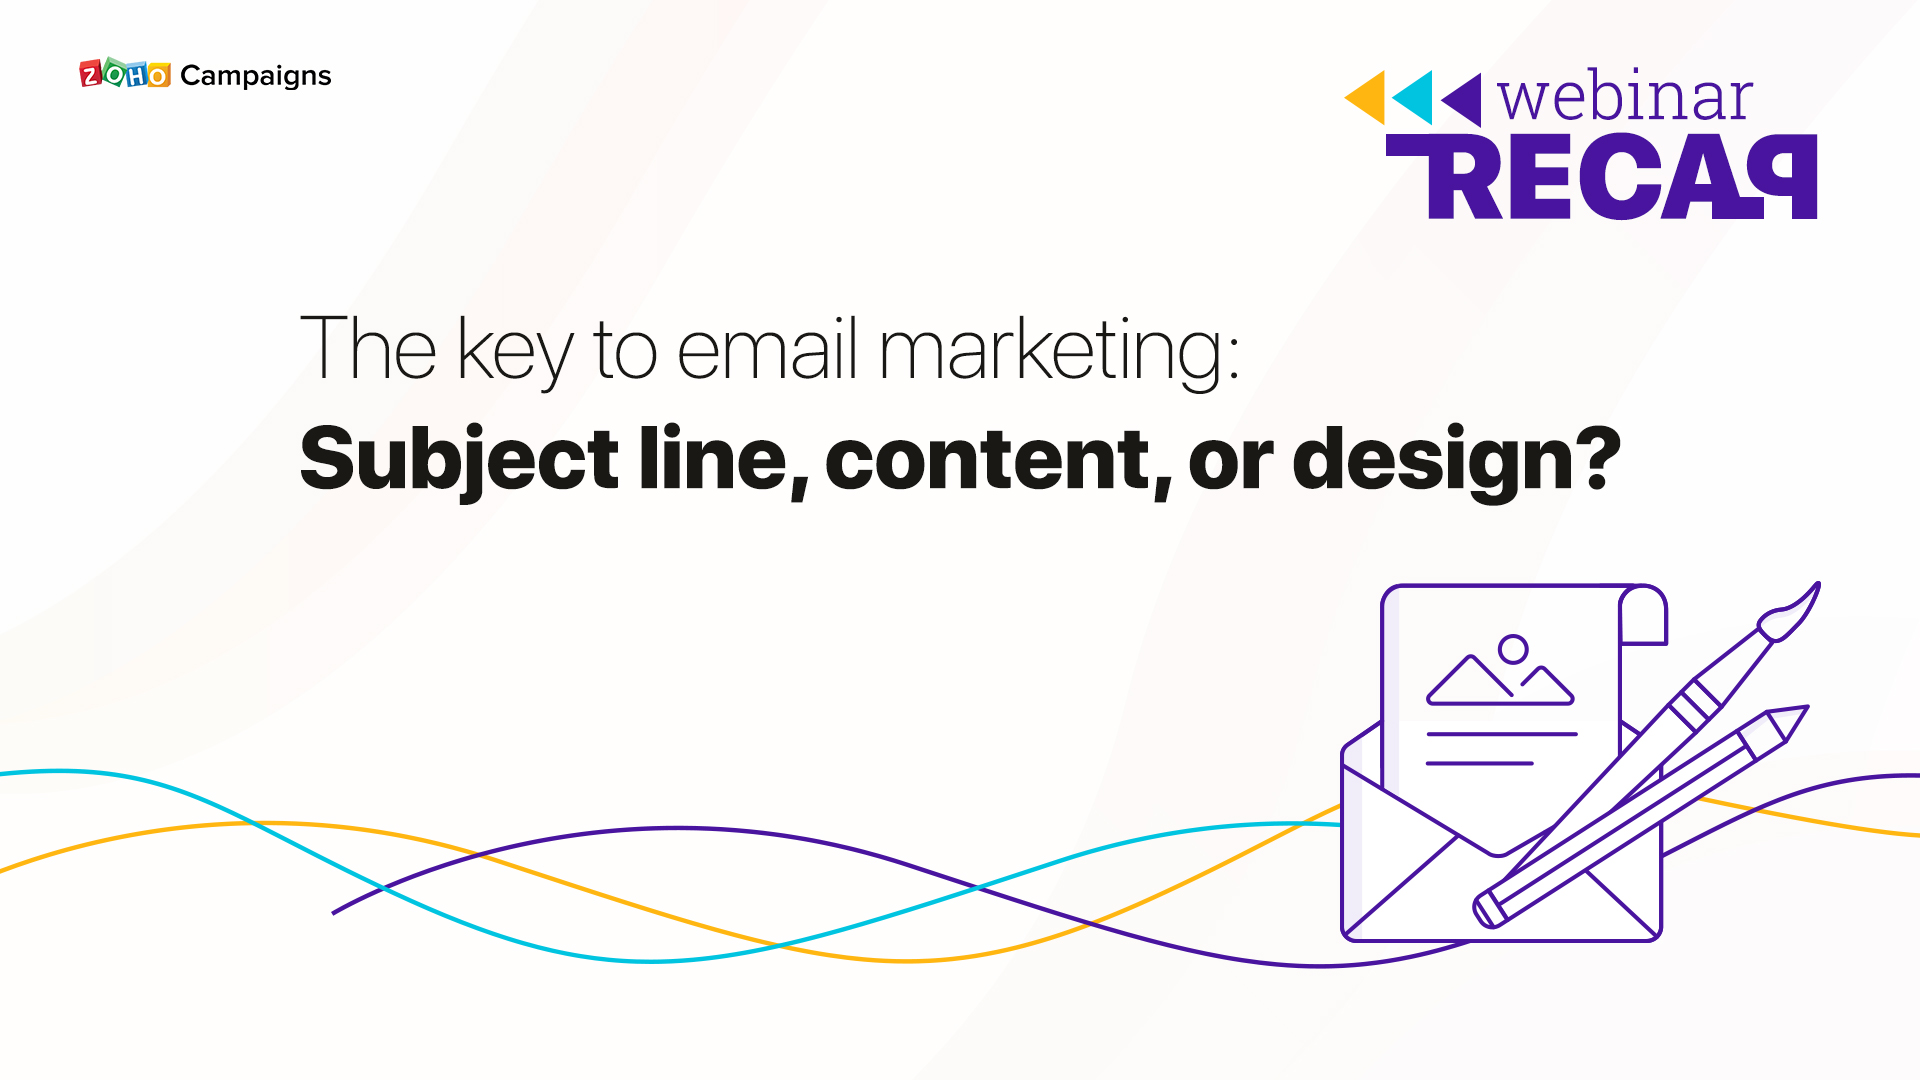 The key to email marketing: Subject line, content, or design?